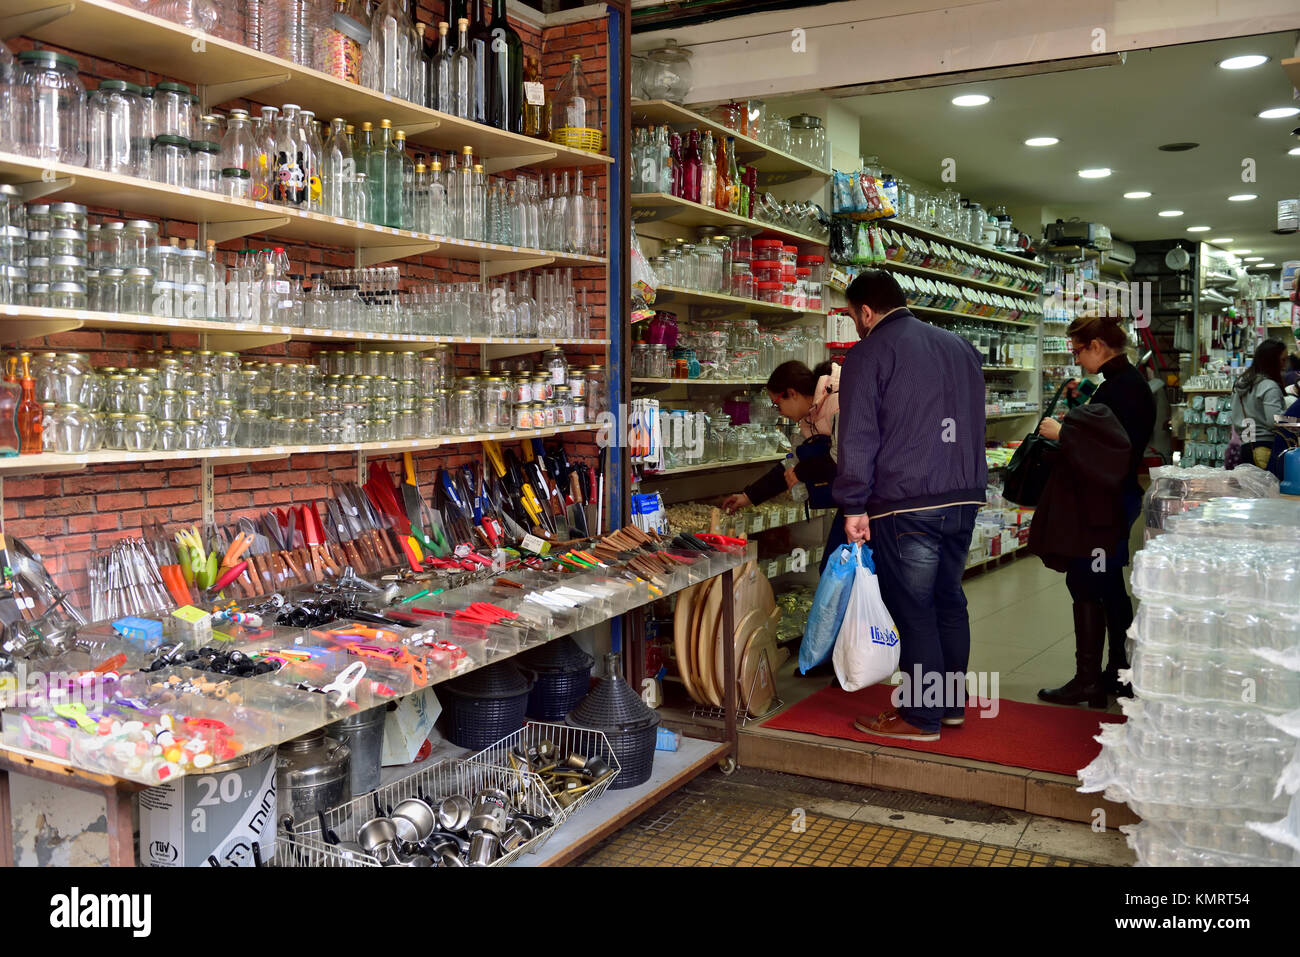 Looking into local hardware shop specializing in glassware and cooking utensils in central Athens - Stock Image